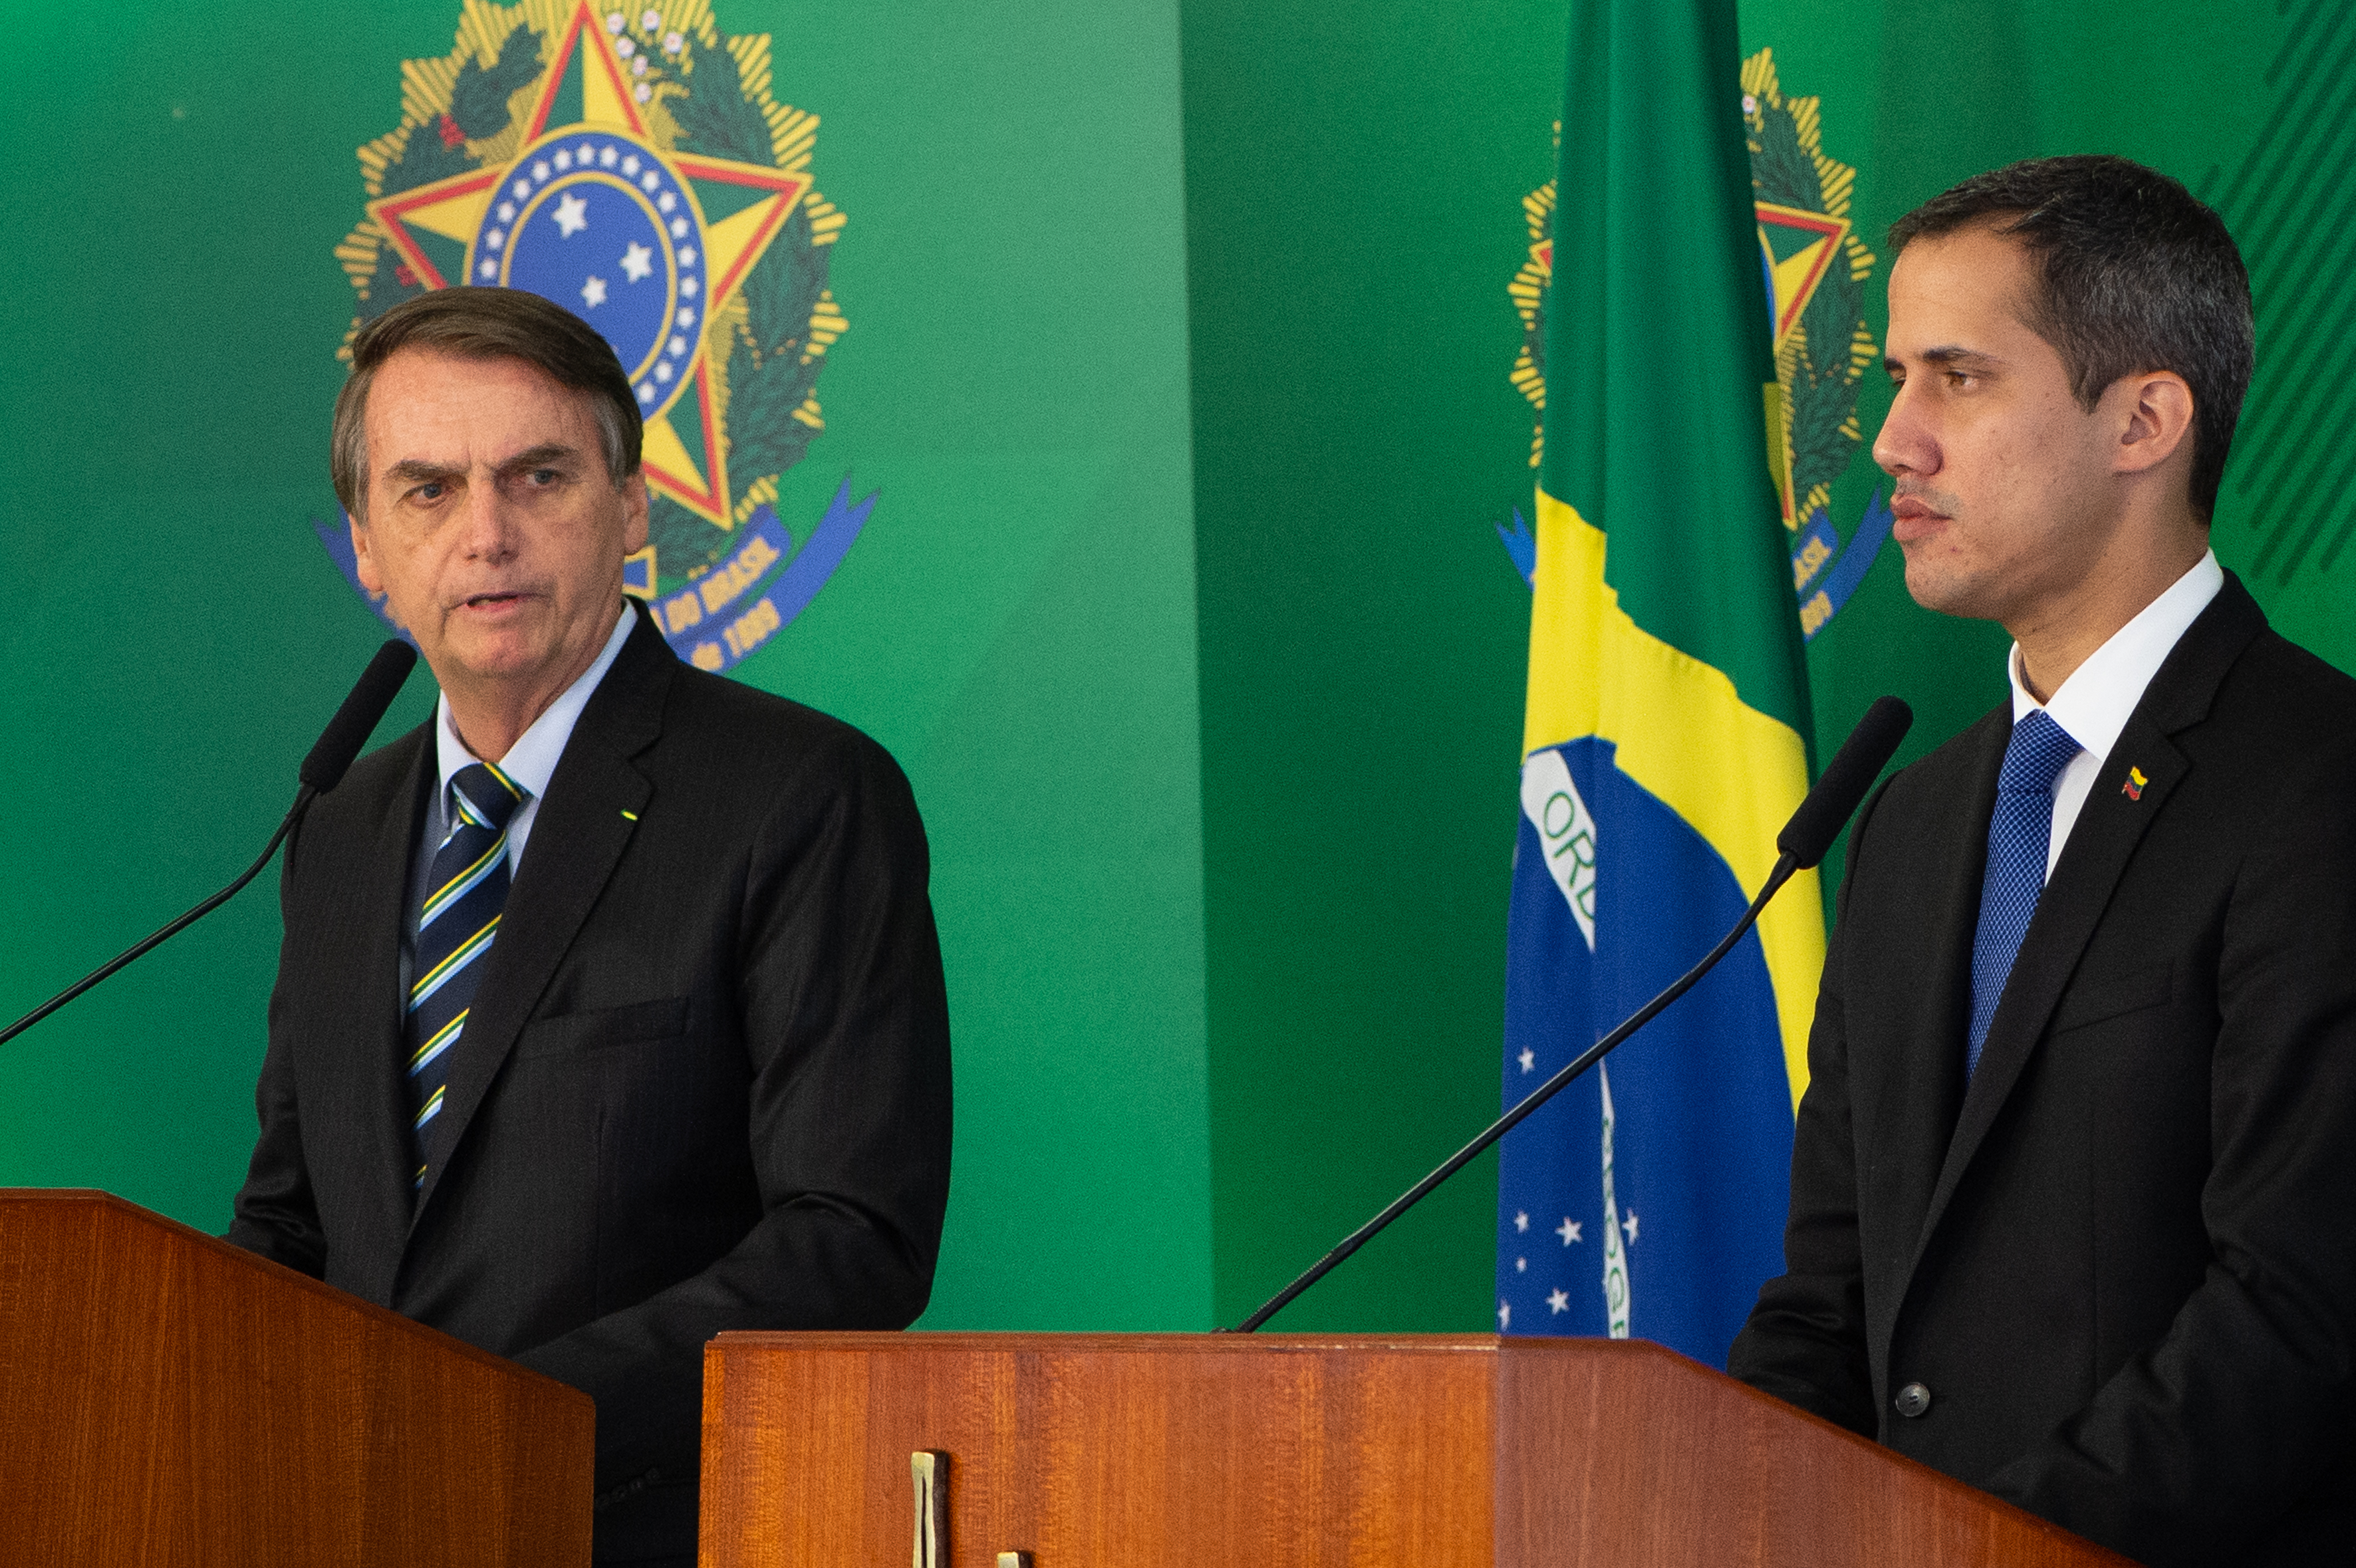 Venezuelan opposition leader and self-declared iterim president Juan Guaido and Brazilian President Jair Bolsonaro speak during a press conference at Palace Itamaraty on February 28, 2019 in Brasília, Brazil. (Photo by Andressa Anholete/Getty Images)